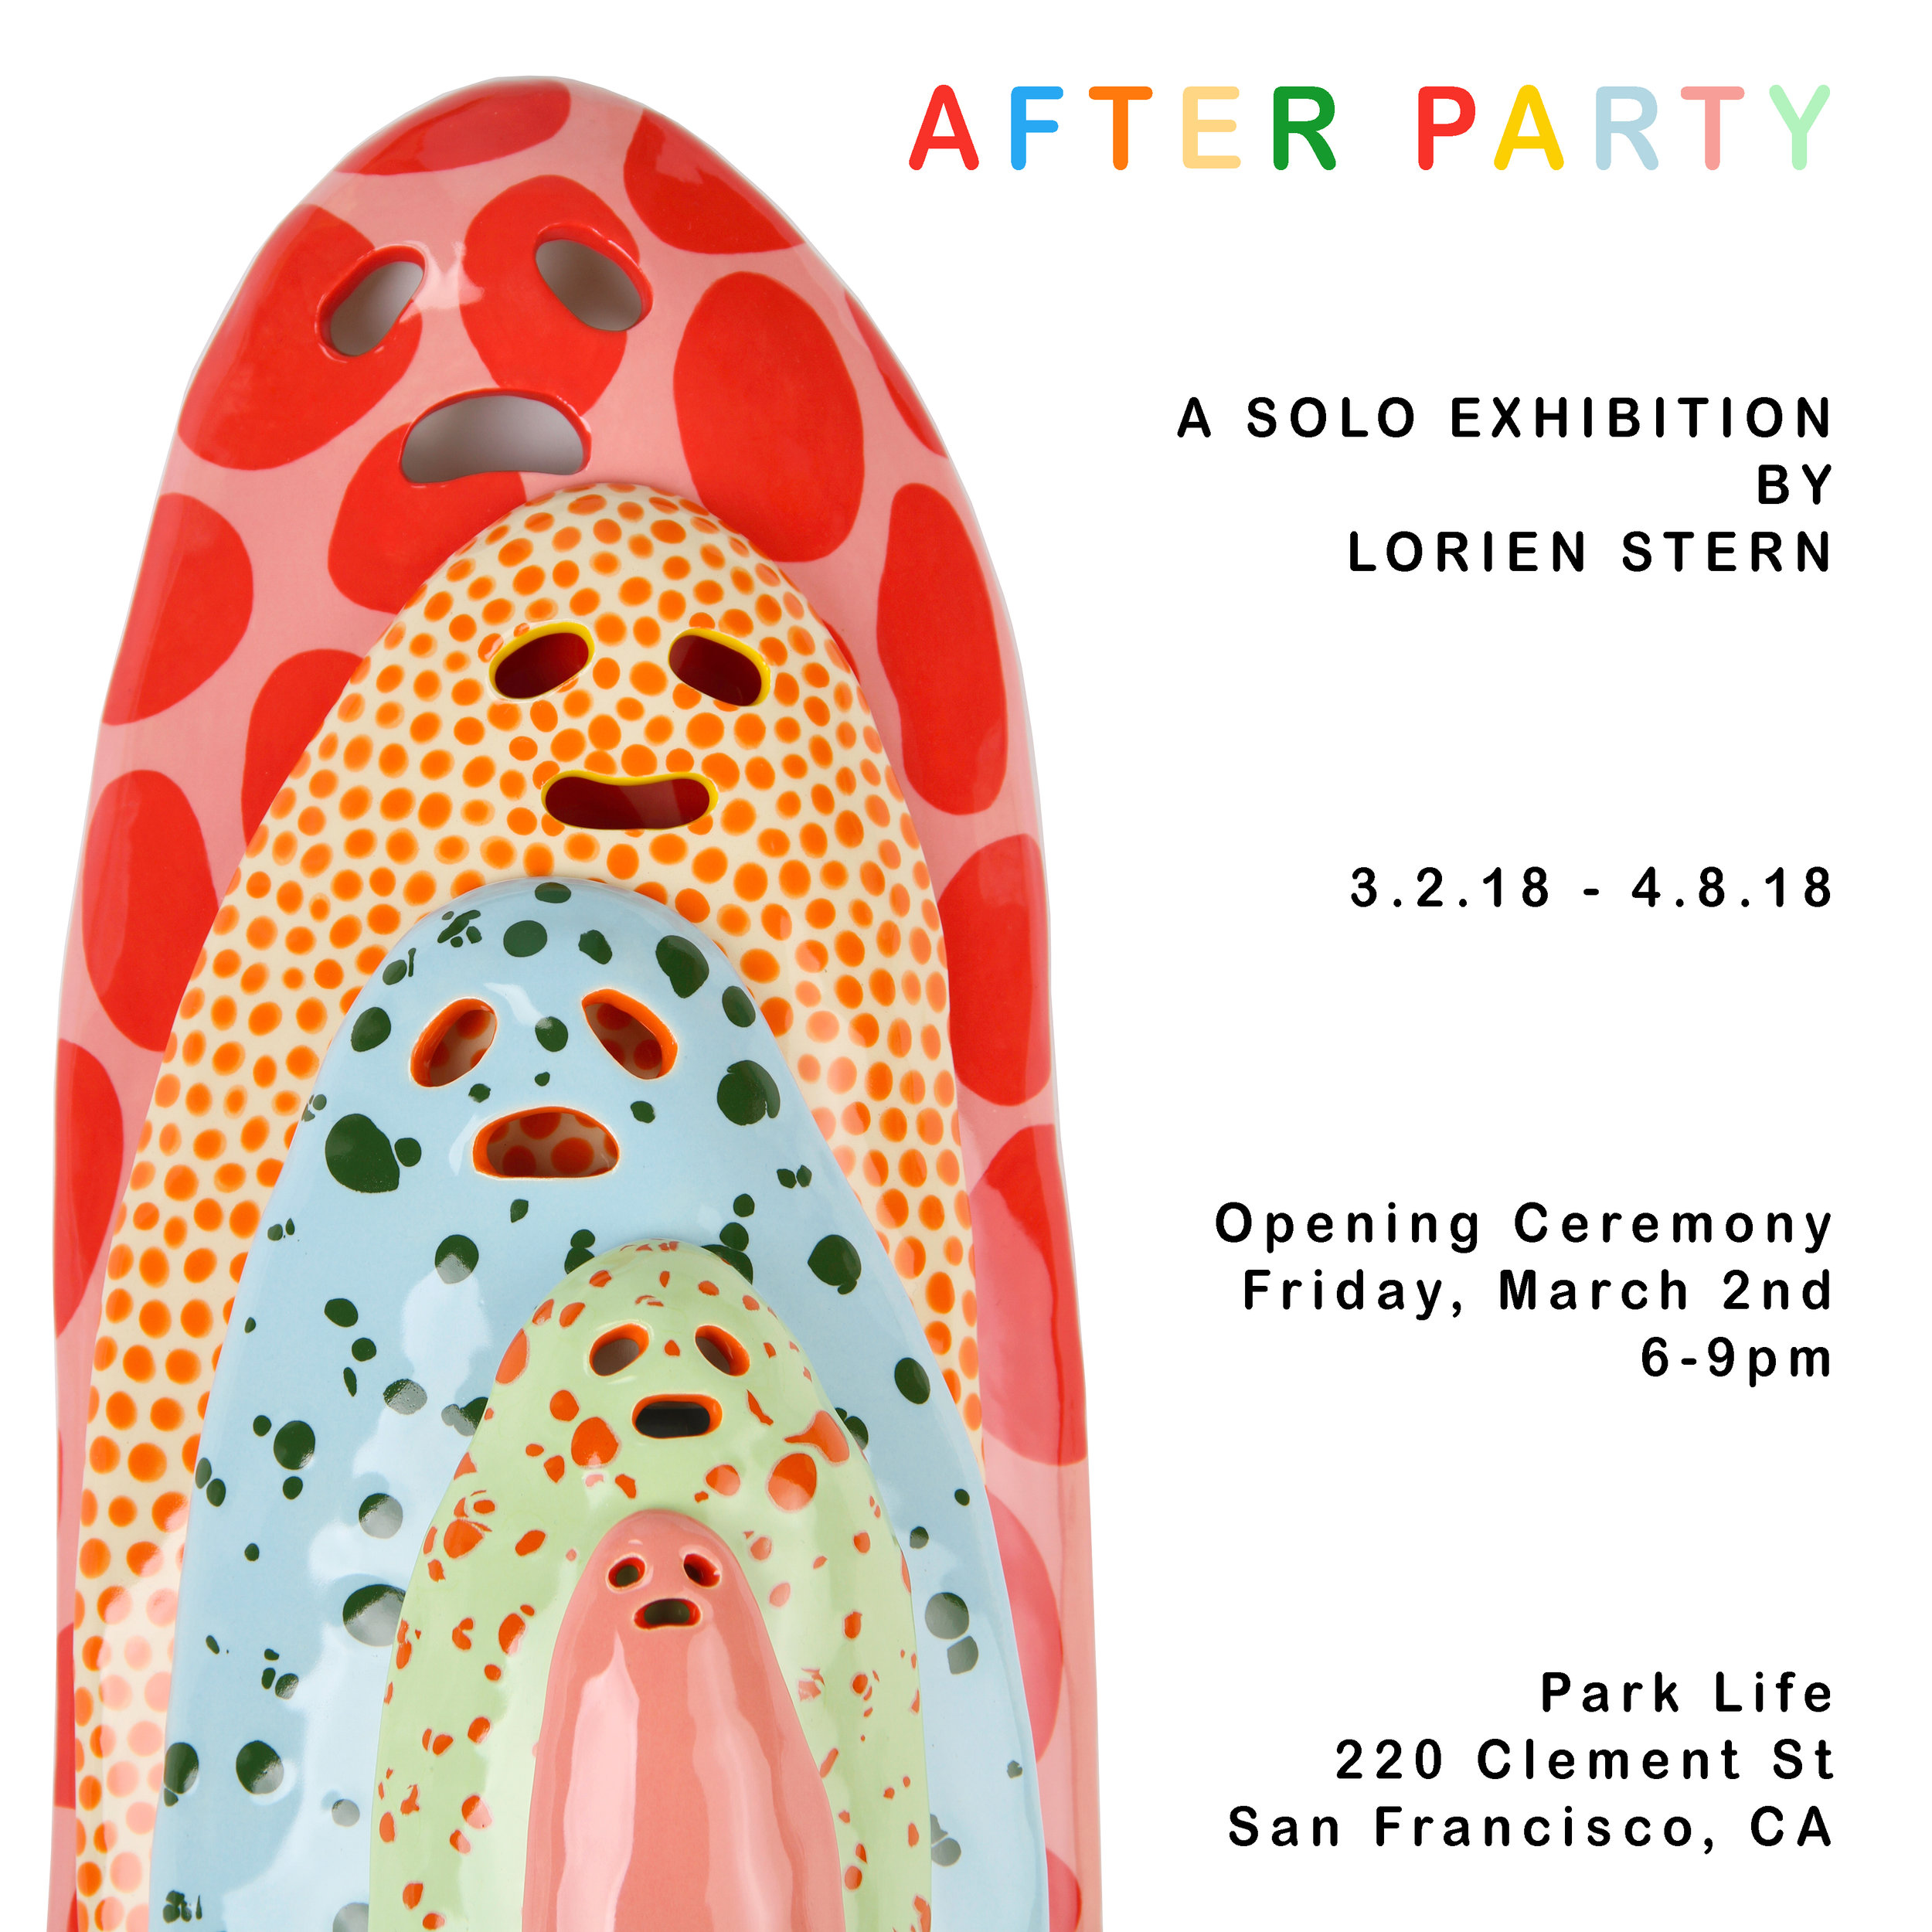 After Party Flyer.jpg